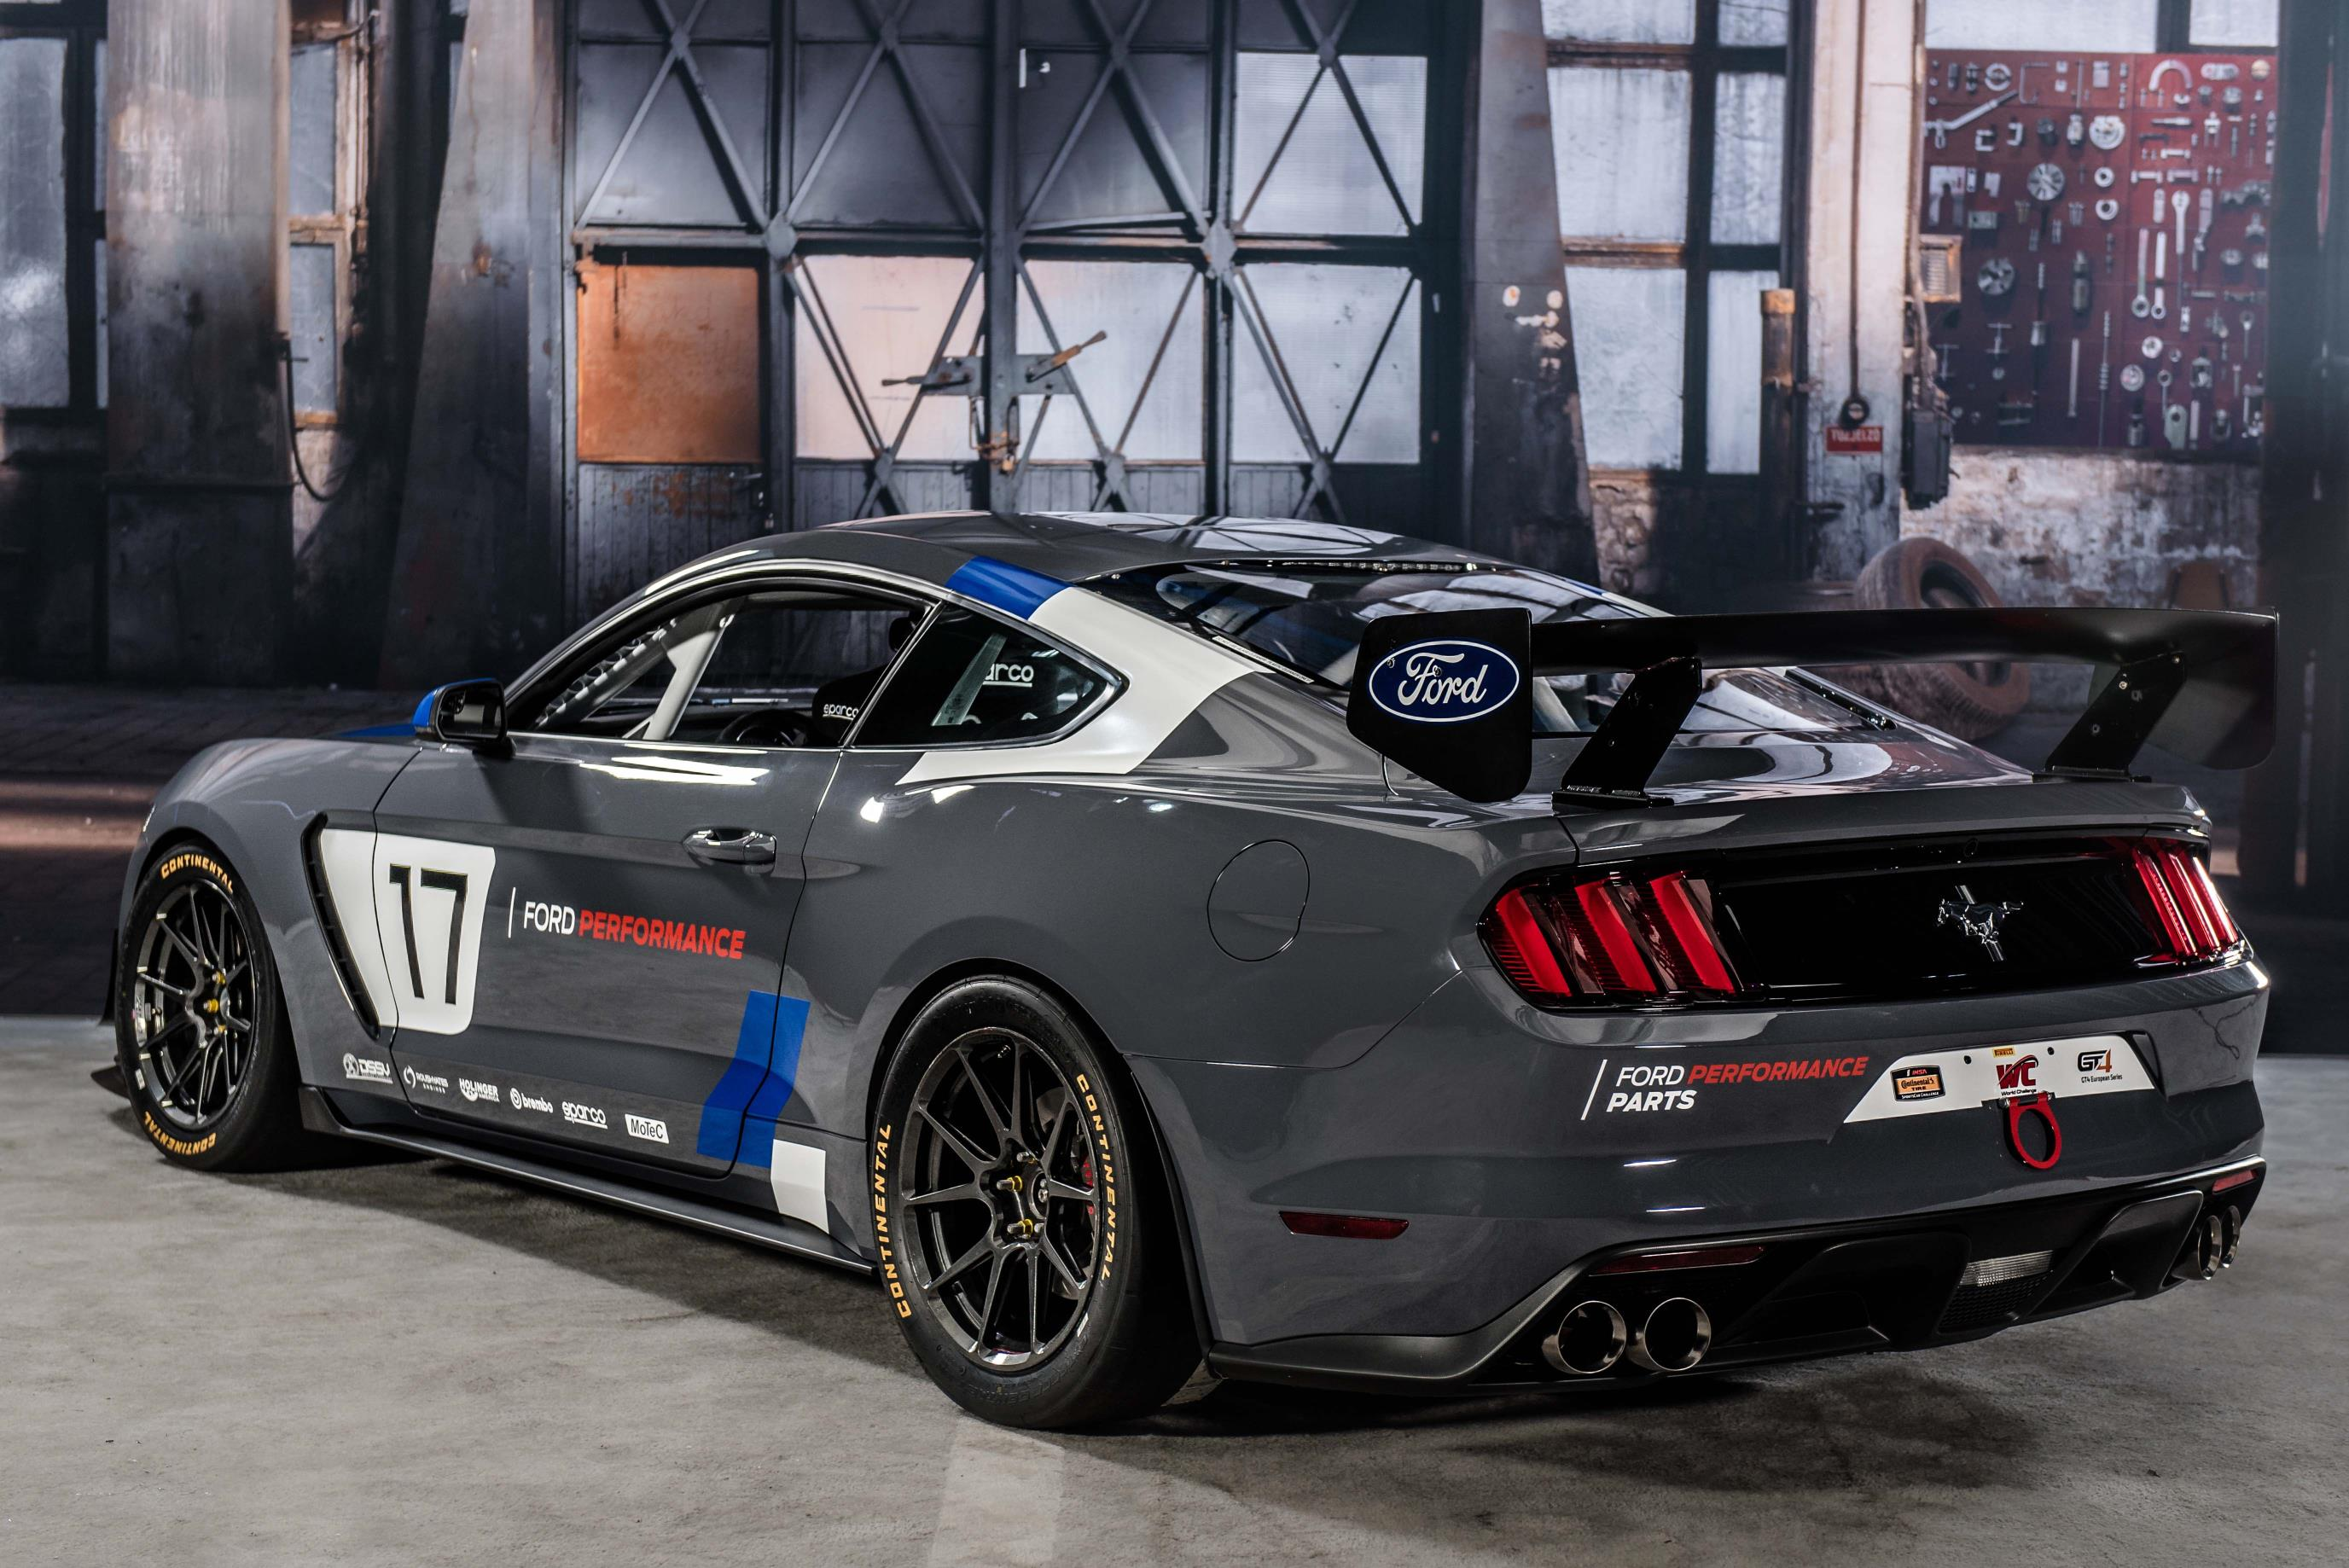 2017 ford mustang gt4 turnkey racecar has cross plane crankshaft voodoo v8 autoevolution. Black Bedroom Furniture Sets. Home Design Ideas